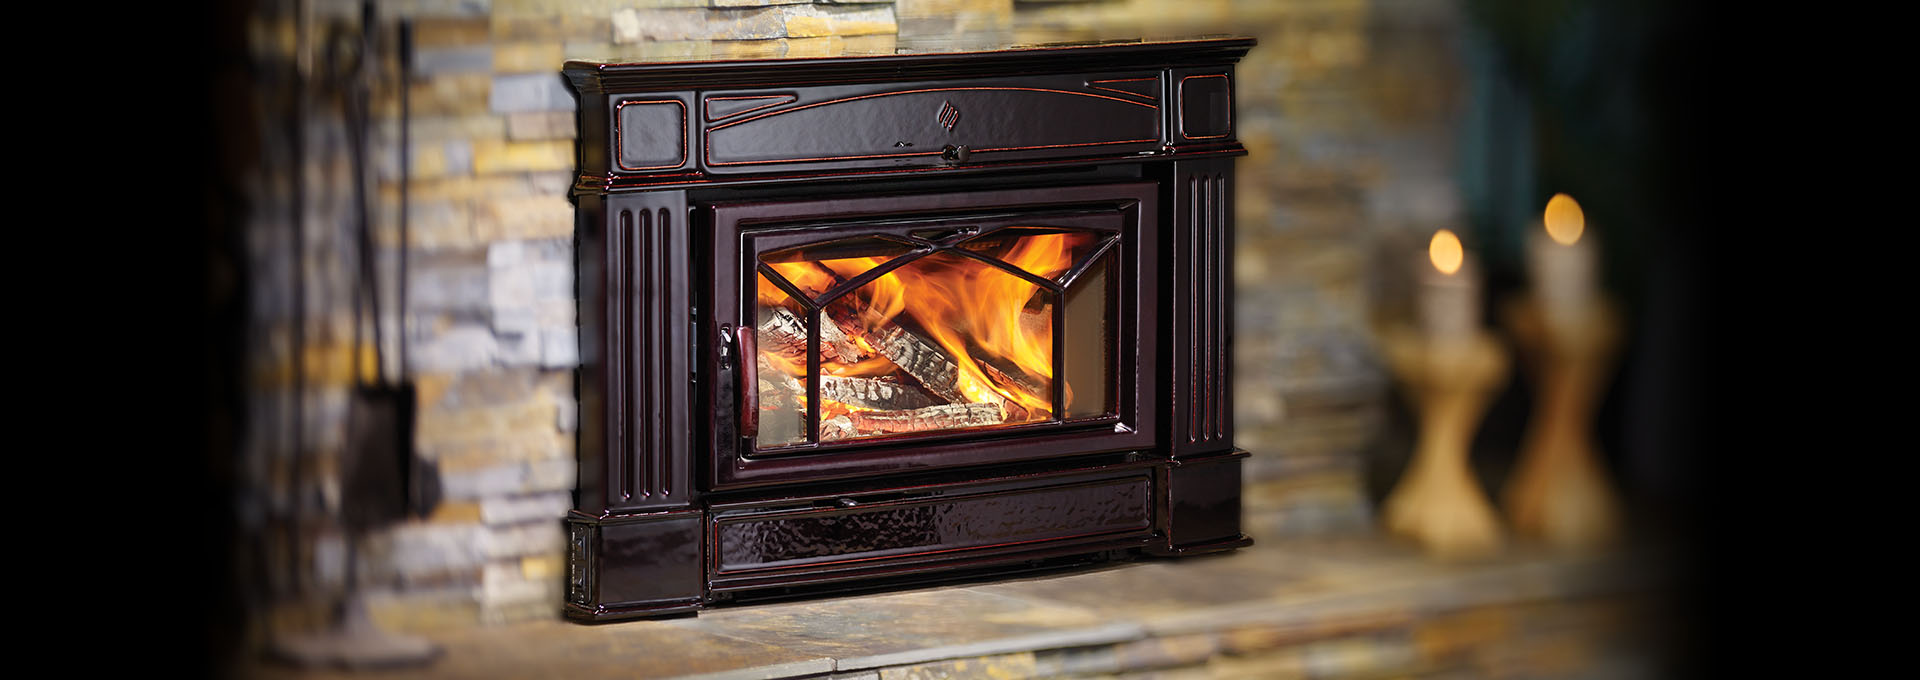 pinterest blower ft fireplaces stoves fireplace on wood sq images with insert best inserts blowers amp burning